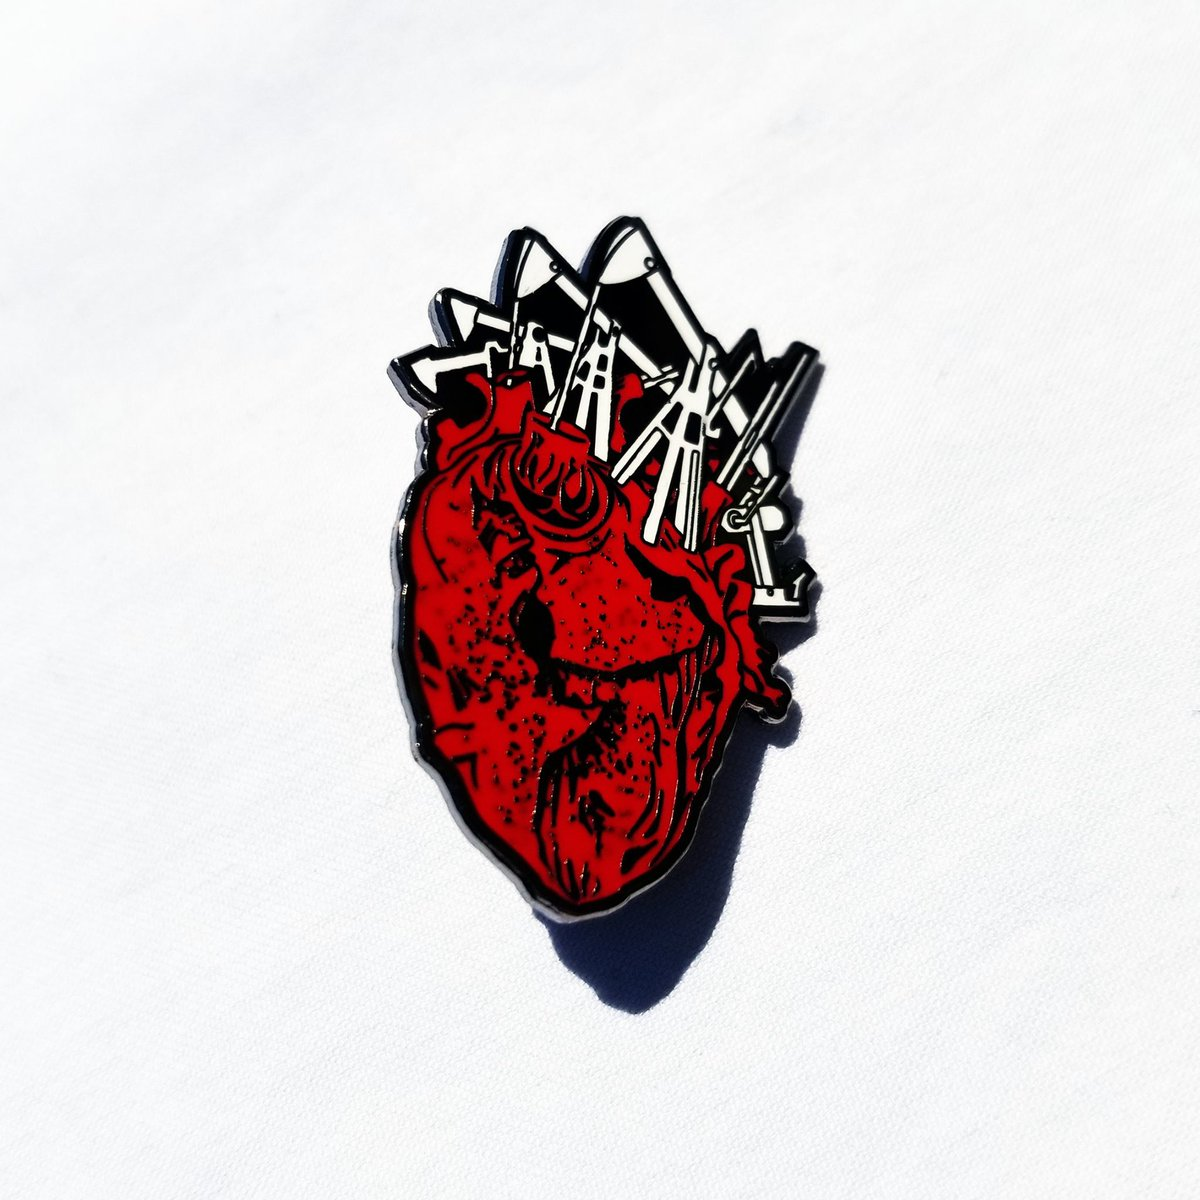 The last 3 limited edition SFR #LapelPins sold out in under 36 hours!  Don&#39;t miss the new @SageFrancis #HTDD10 pin:  https:// store.strangefamousrecords.com/collections/hu man-the-death-dance-10th-anniversary &nbsp; … <br>http://pic.twitter.com/O2MWNDPkOn